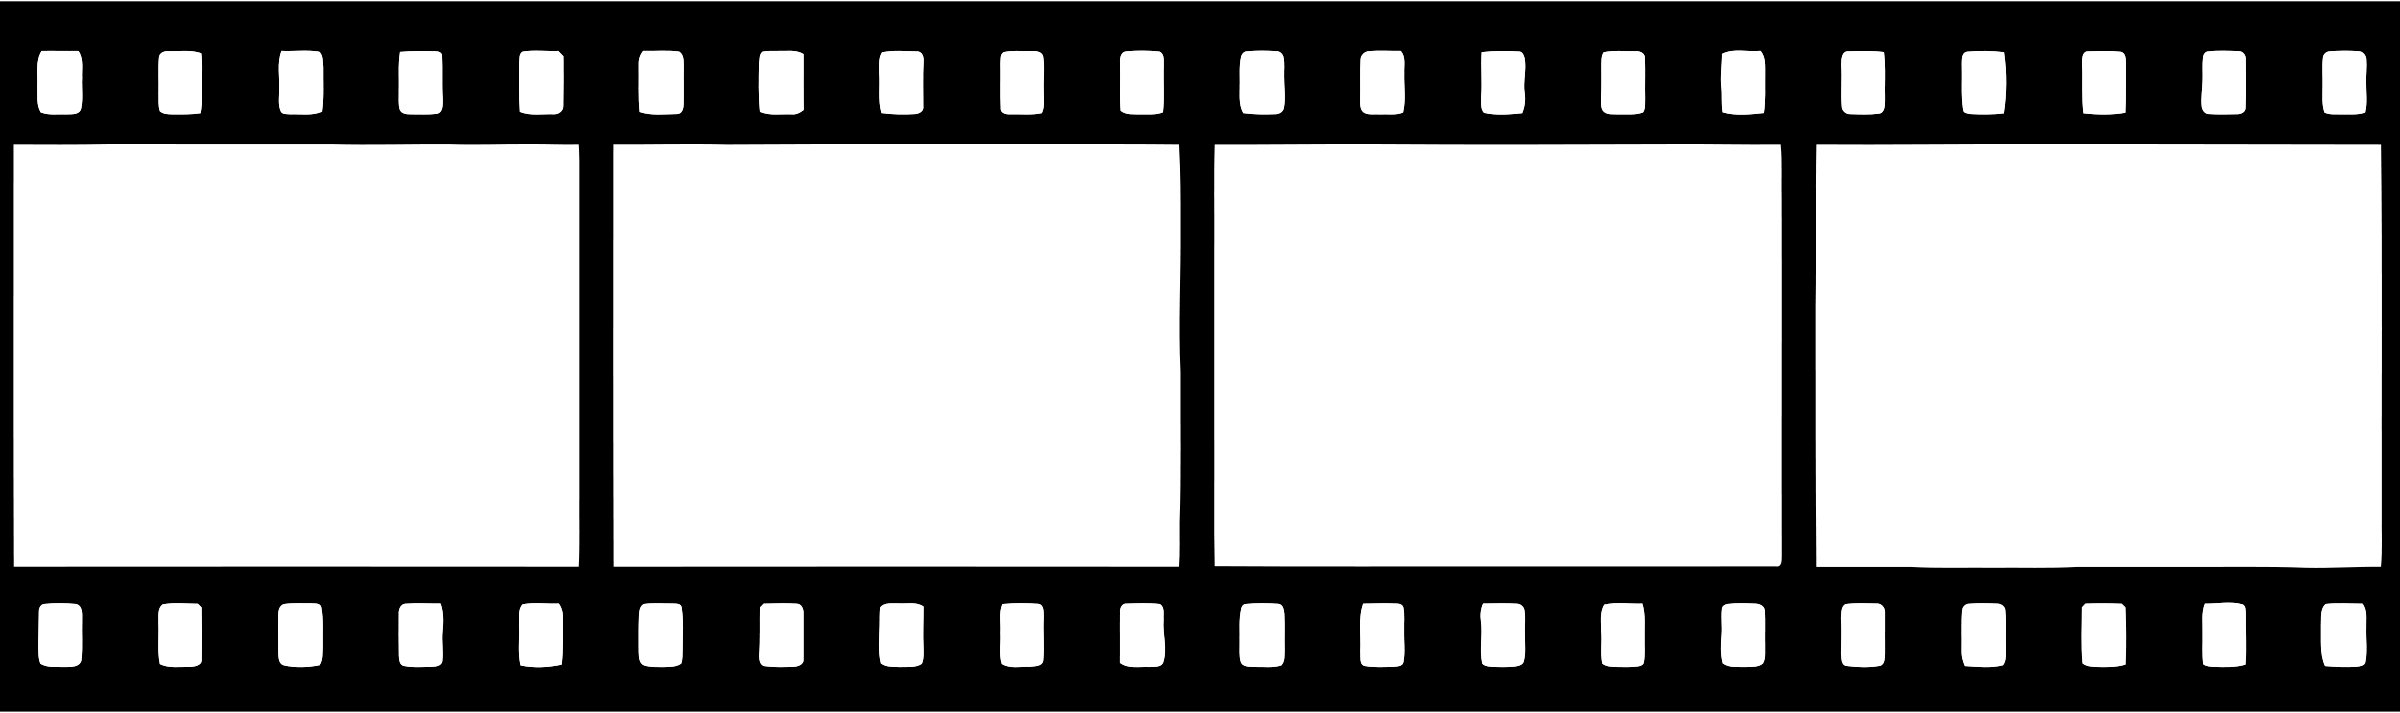 collection of film. Clipart banner movie